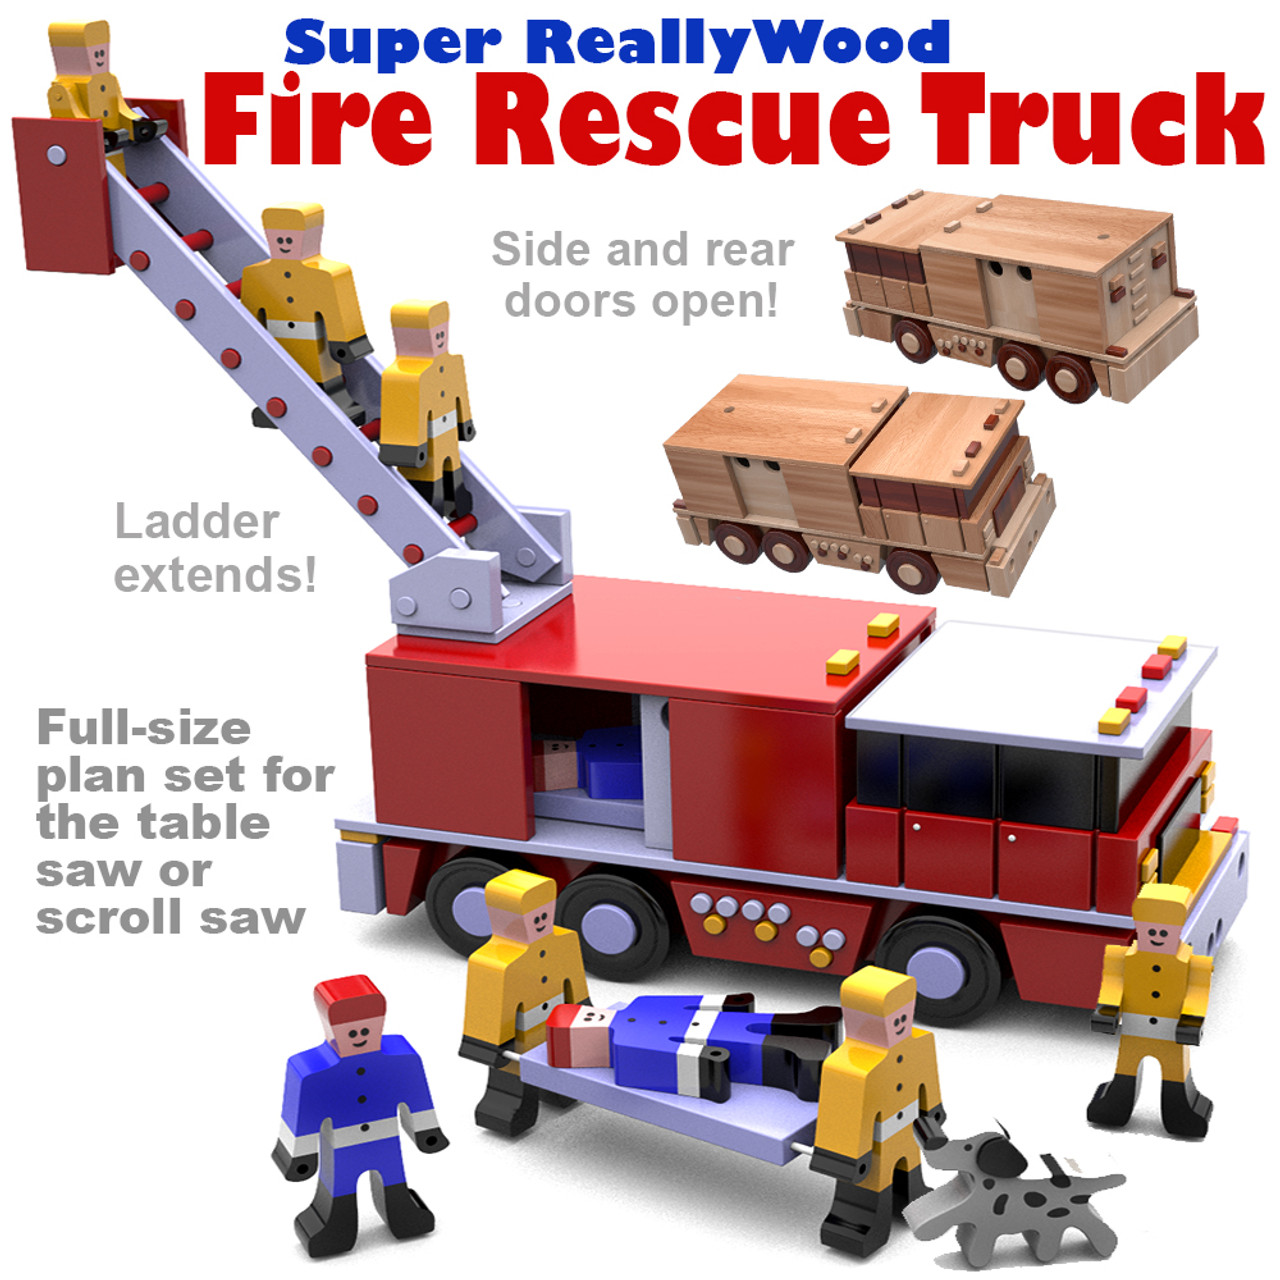 super reallywood rescue fire truck wood toy plans (pdf download)